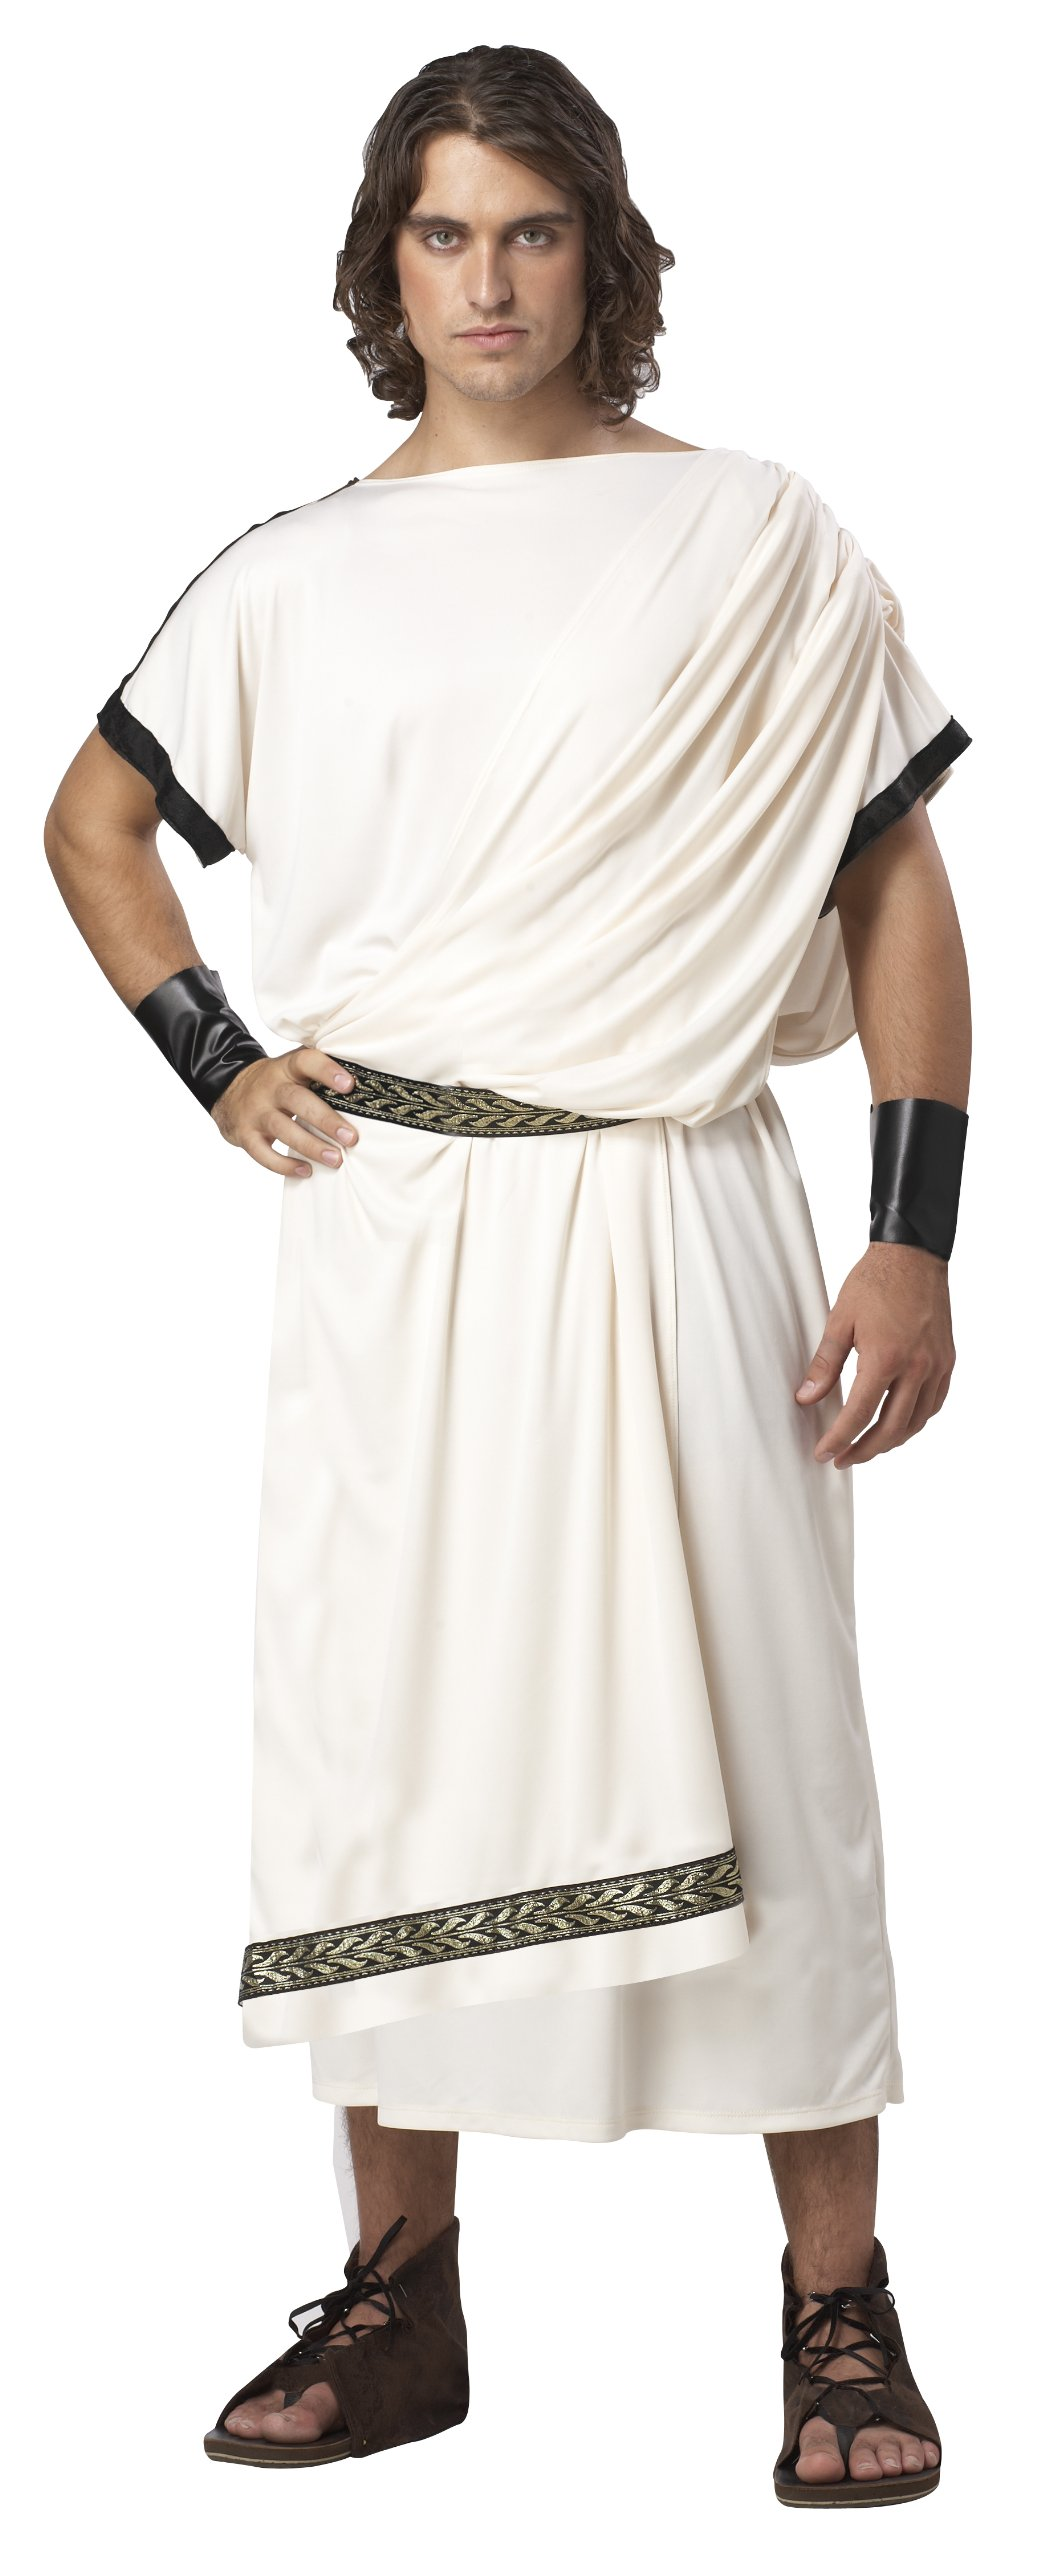 California Costumes Men's Deluxe Classic Toga Set, Cream, One Size